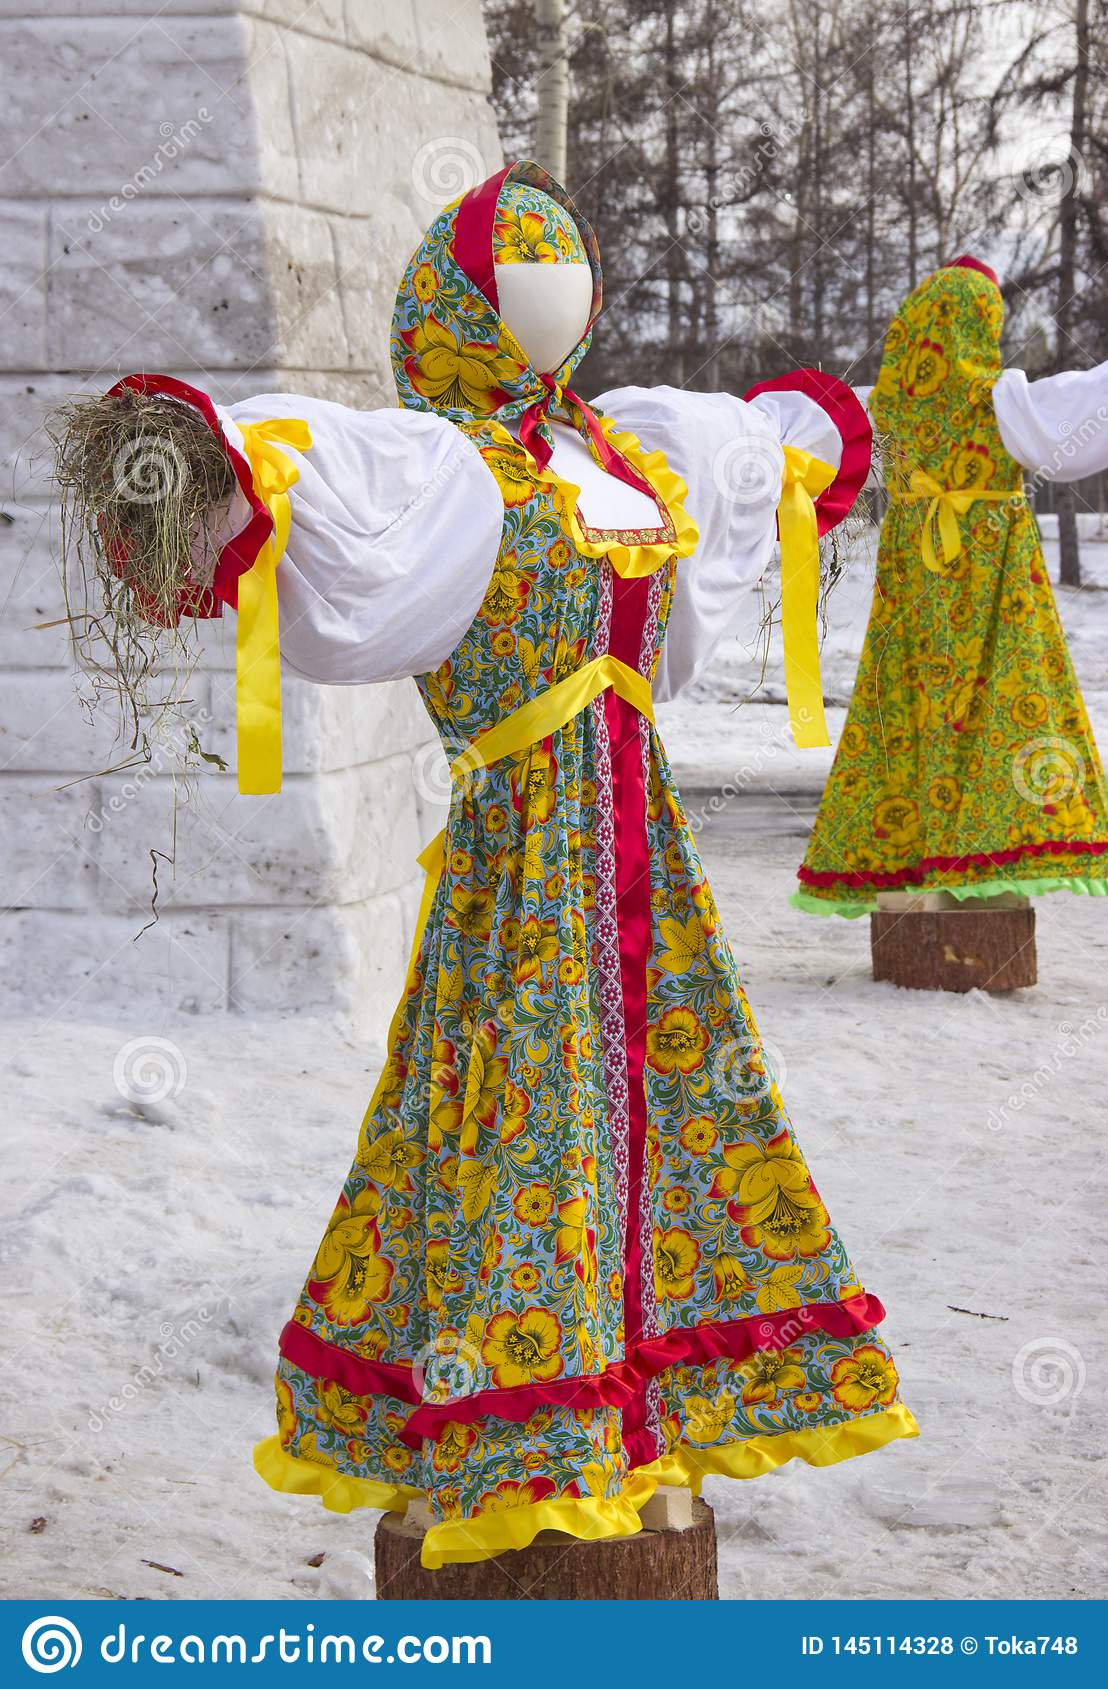 Stuffed in traditional Russian clothes